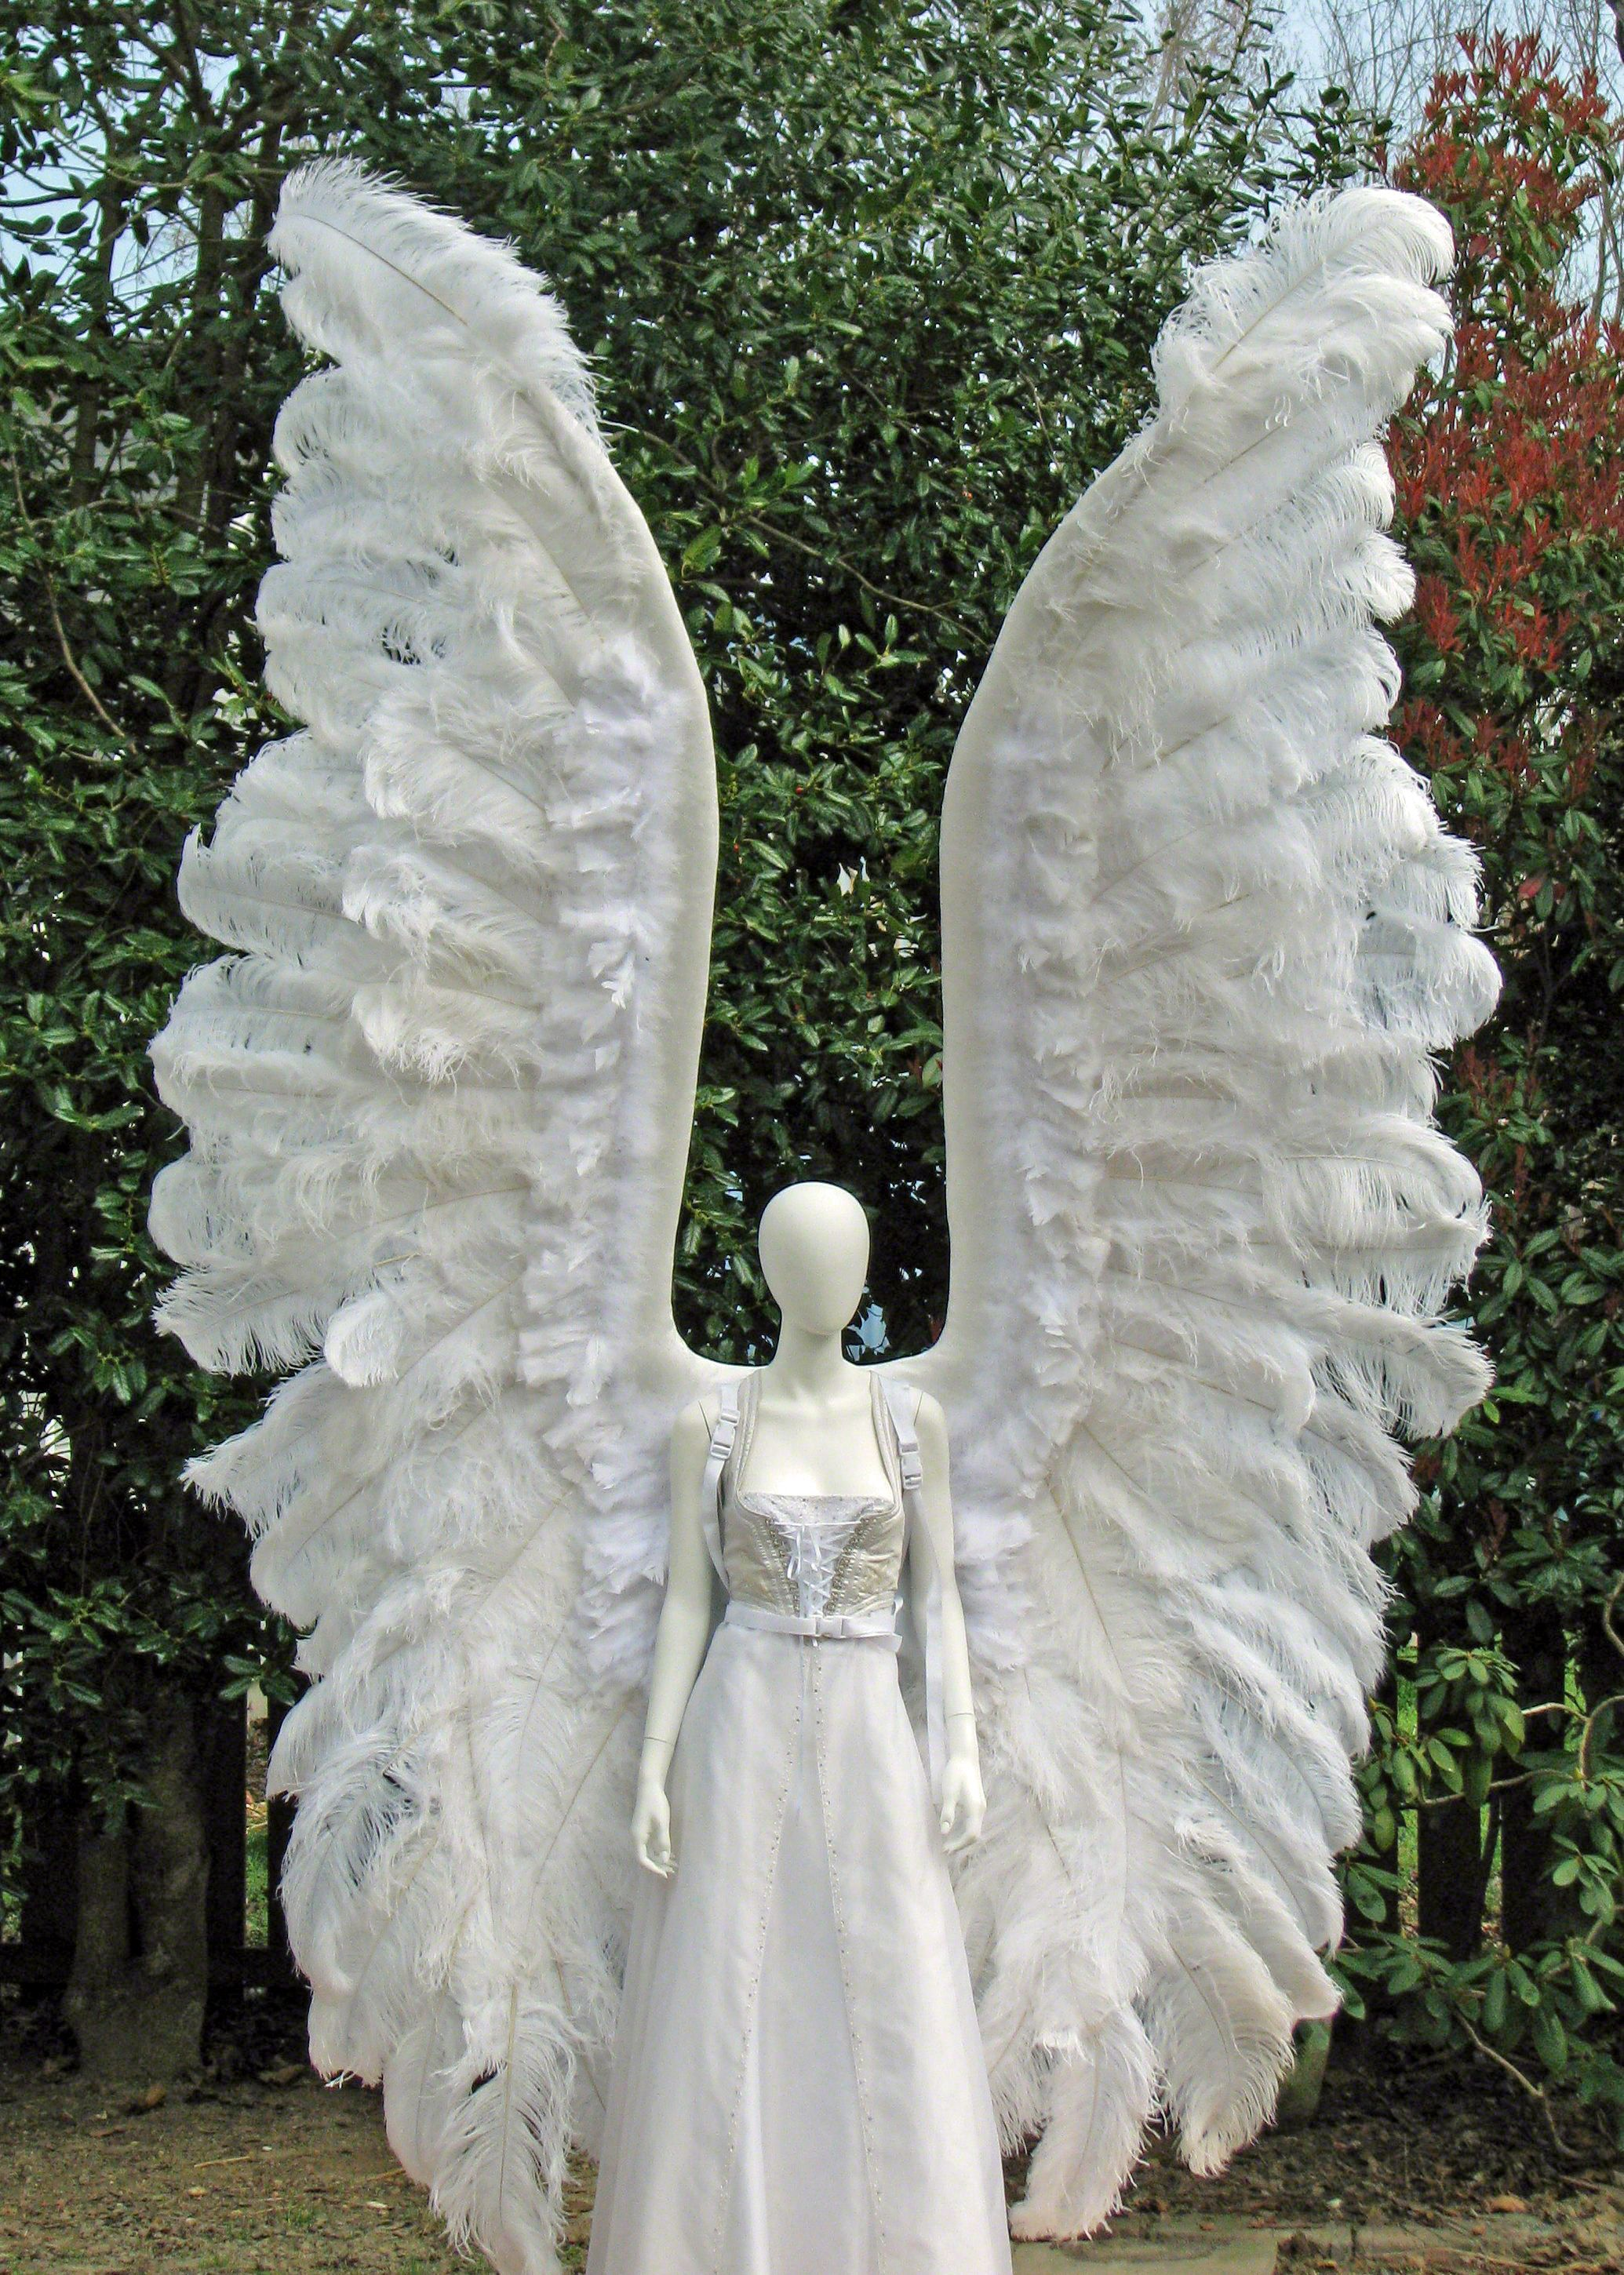 Archangel Costume Wings For Stage Productions Including Church Christmas Pageants And Easter Performances Fantasy Art Angels Wings Costume Angel Wings Costume